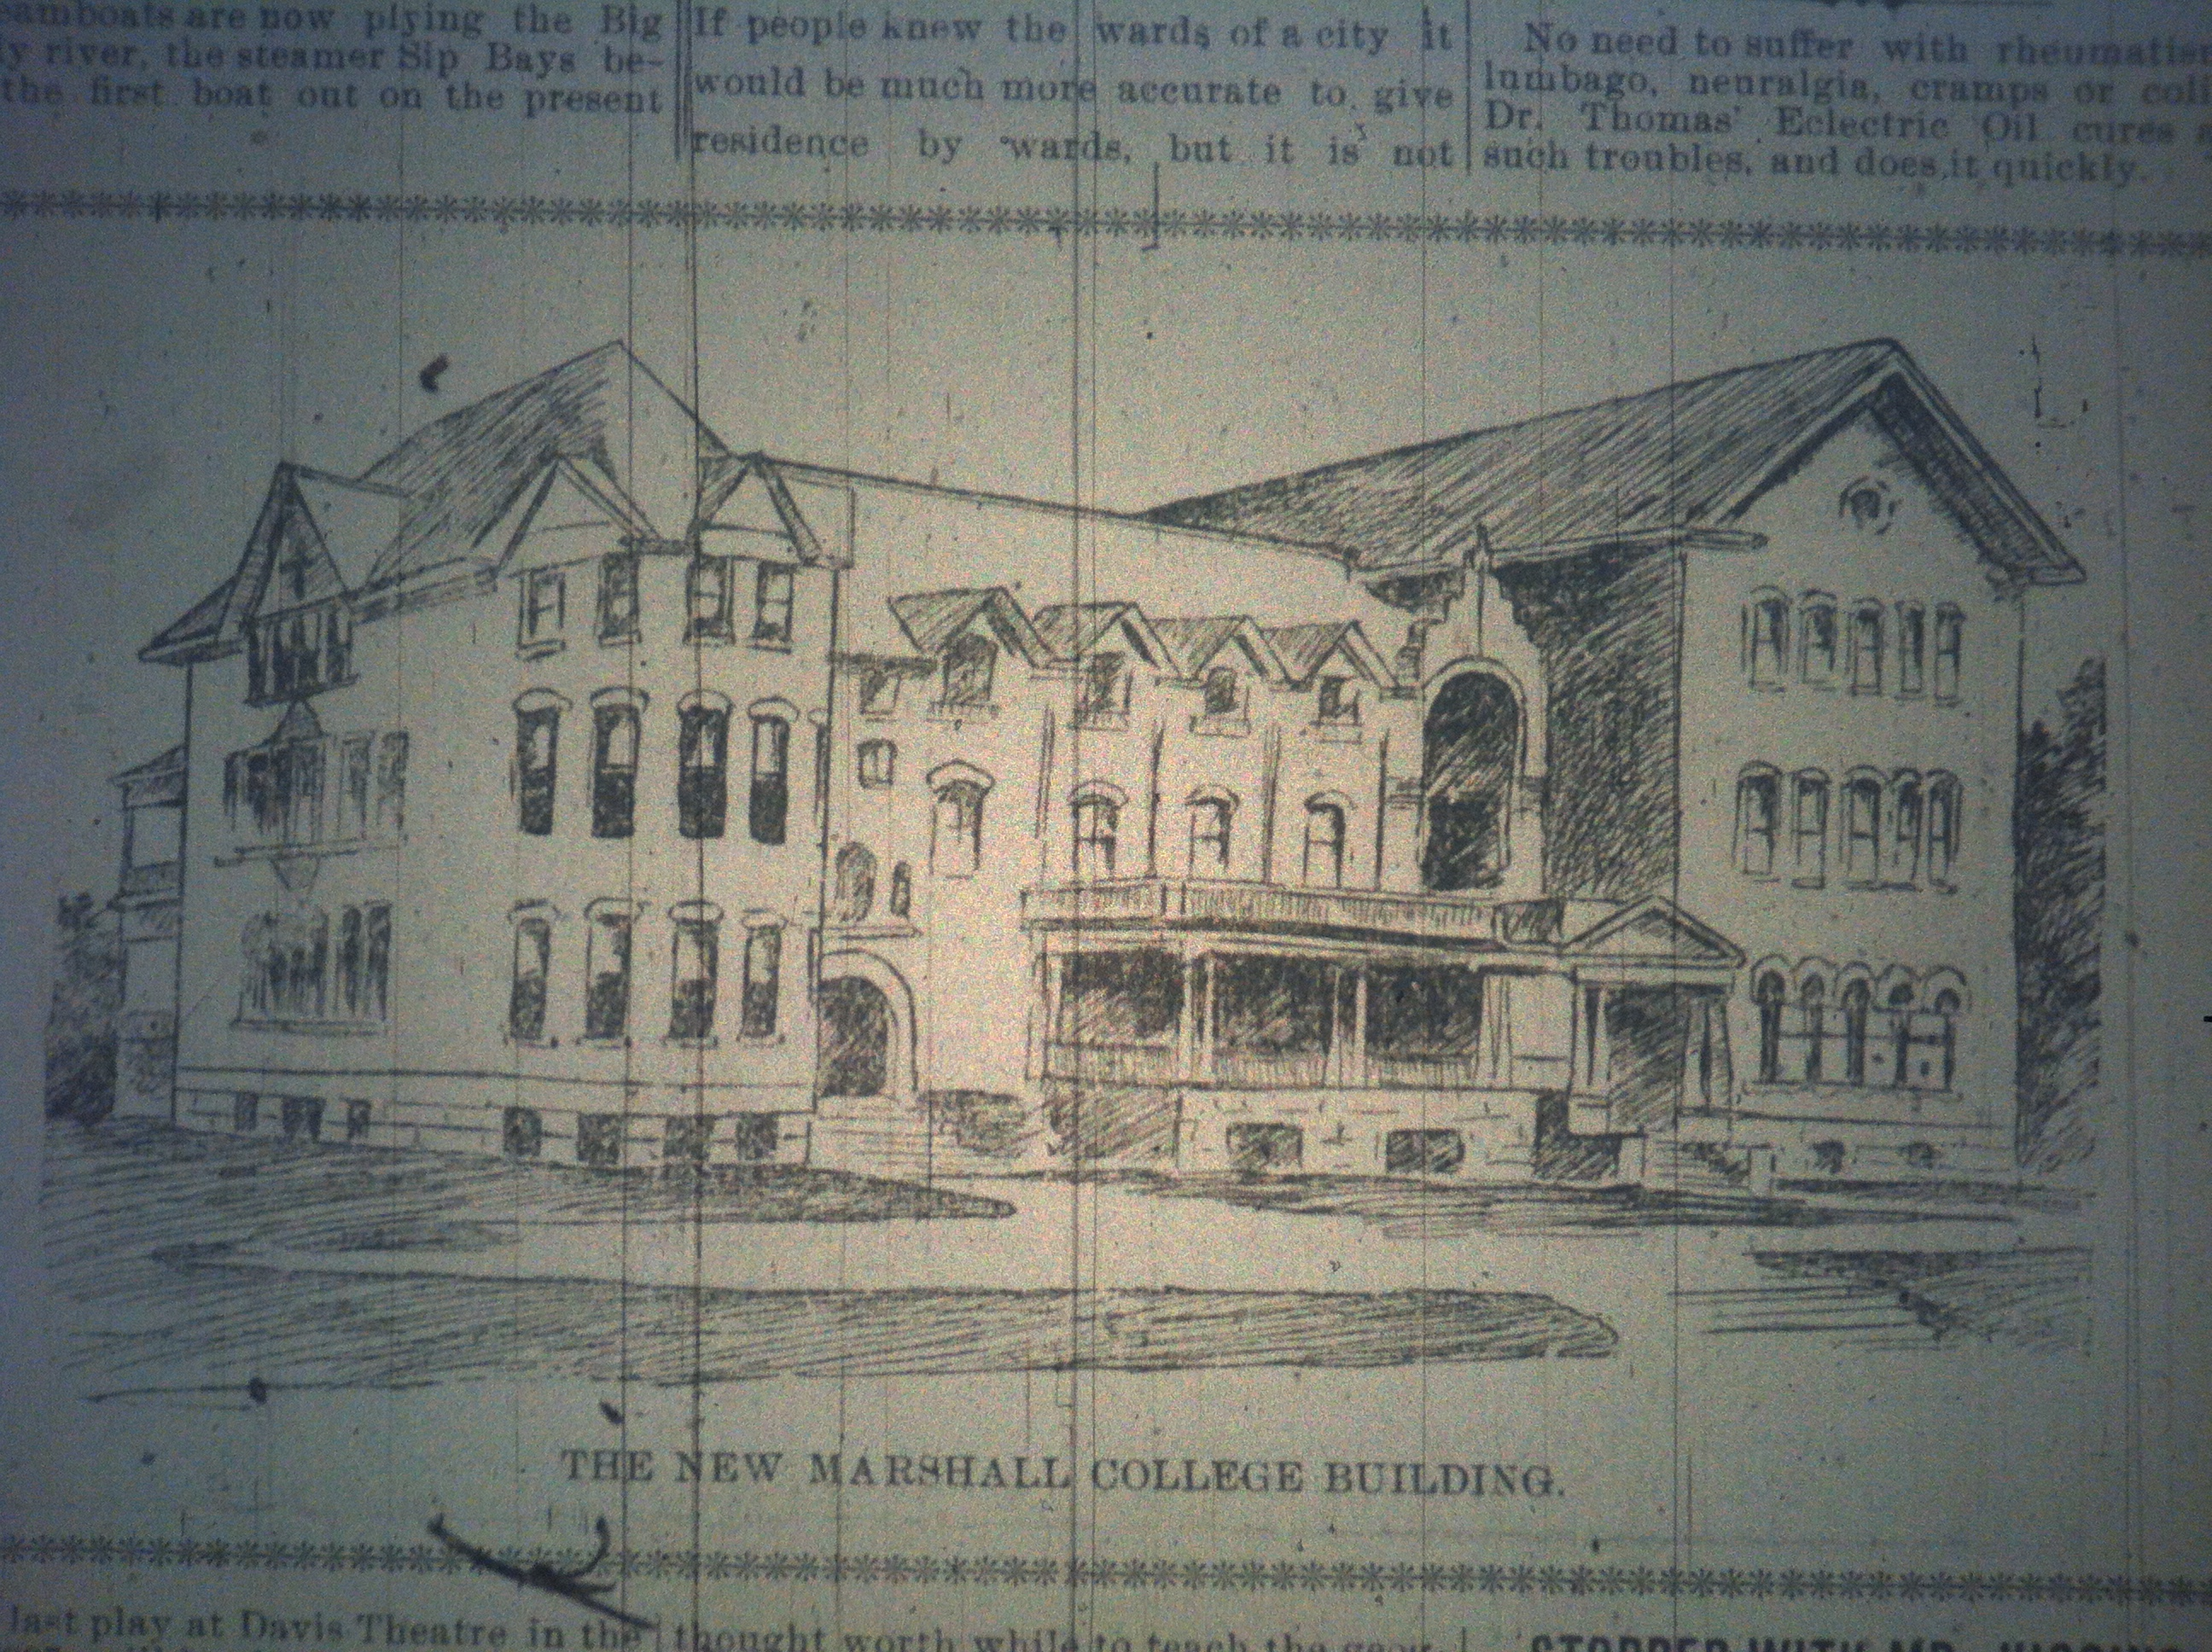 New Marshall College Building HuA 12.23.1897